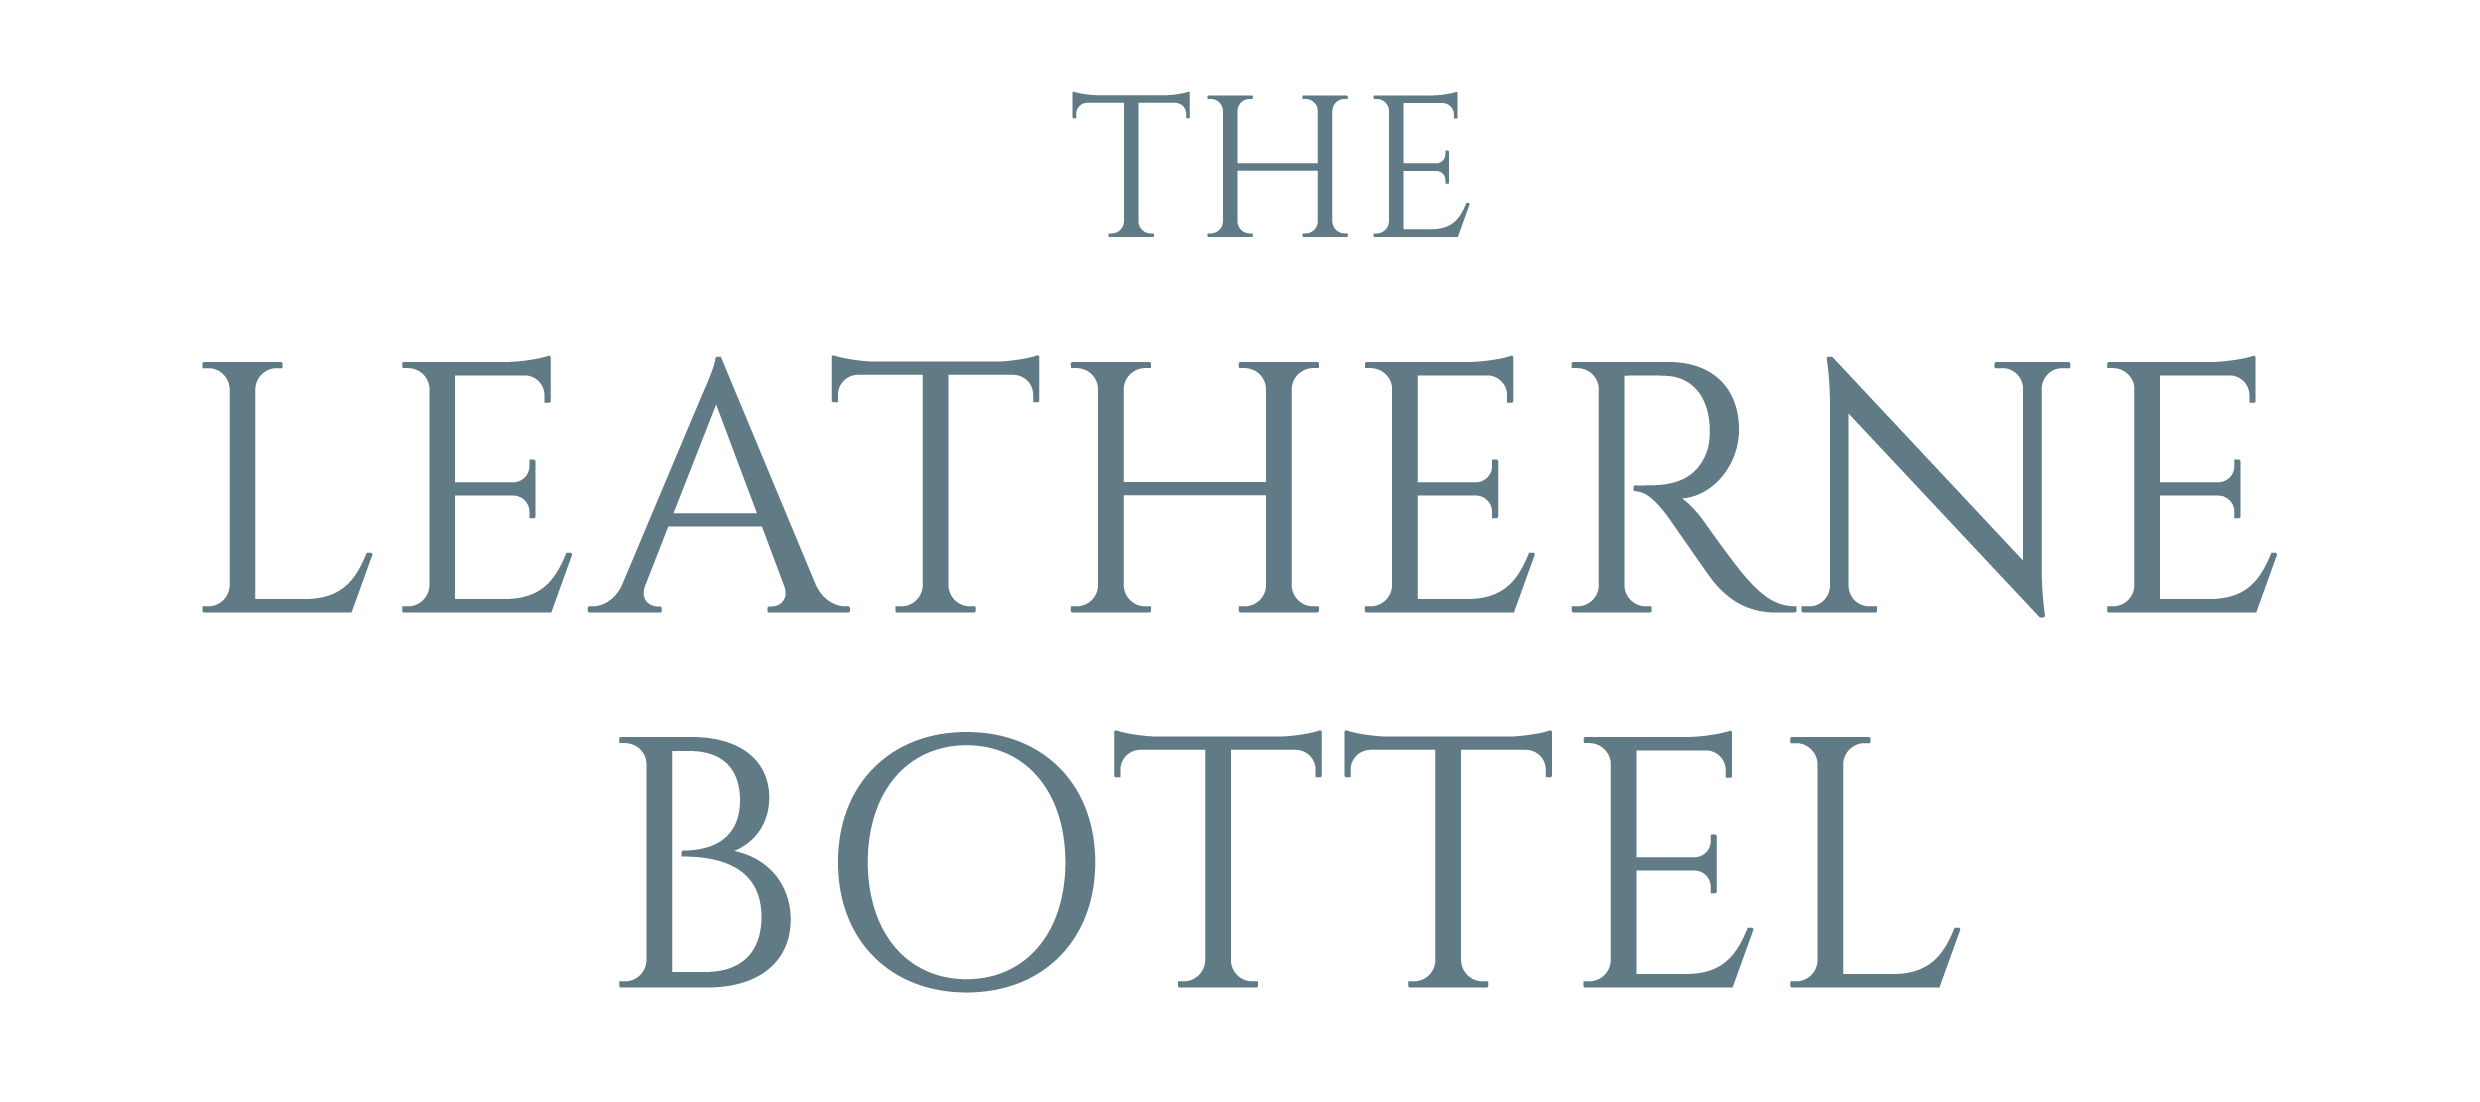 The Leatherne Bottel